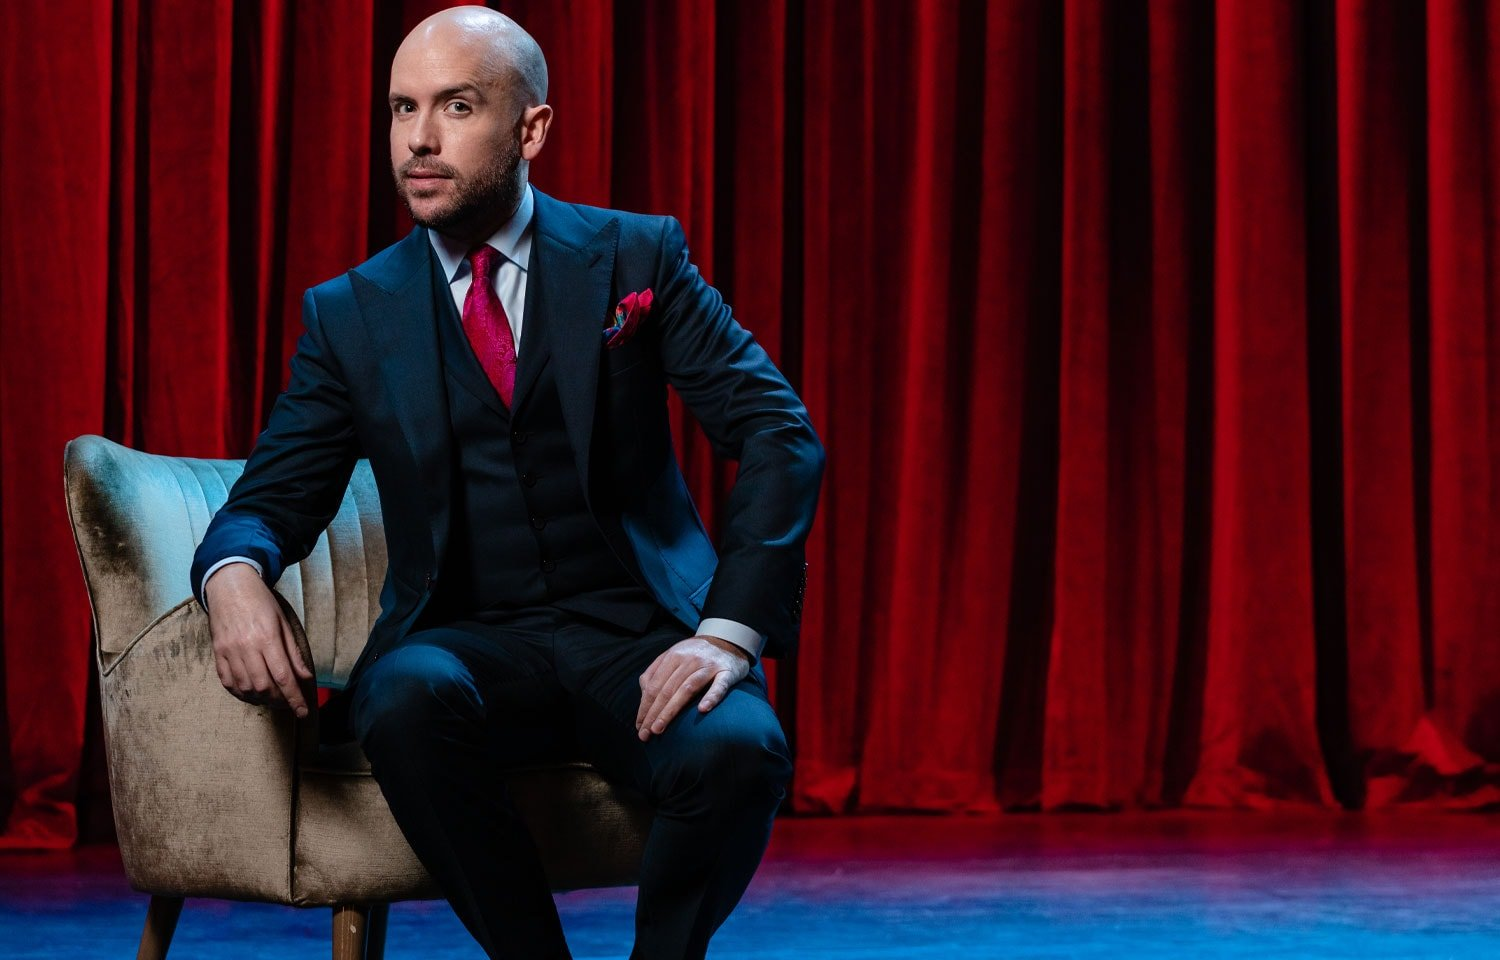 TOM ALLEN TO EXPLORE 65 YEARS OF TV ADS IN NEW CHANNEL 4 SHOW